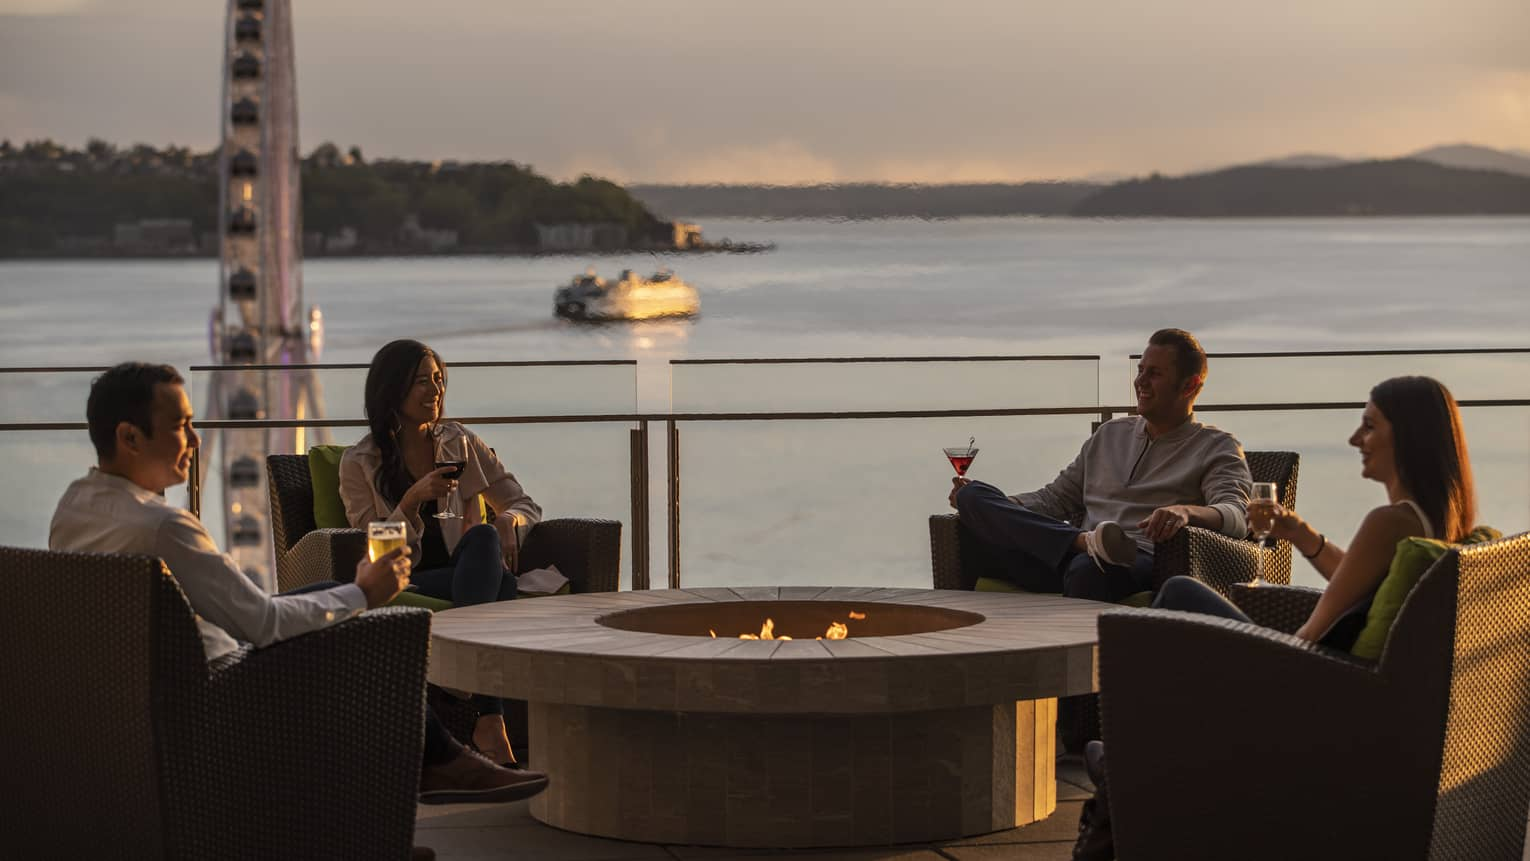 Guests enjoy drinks by the firepit with a view of the Seattle Great Wheel and bay behind them